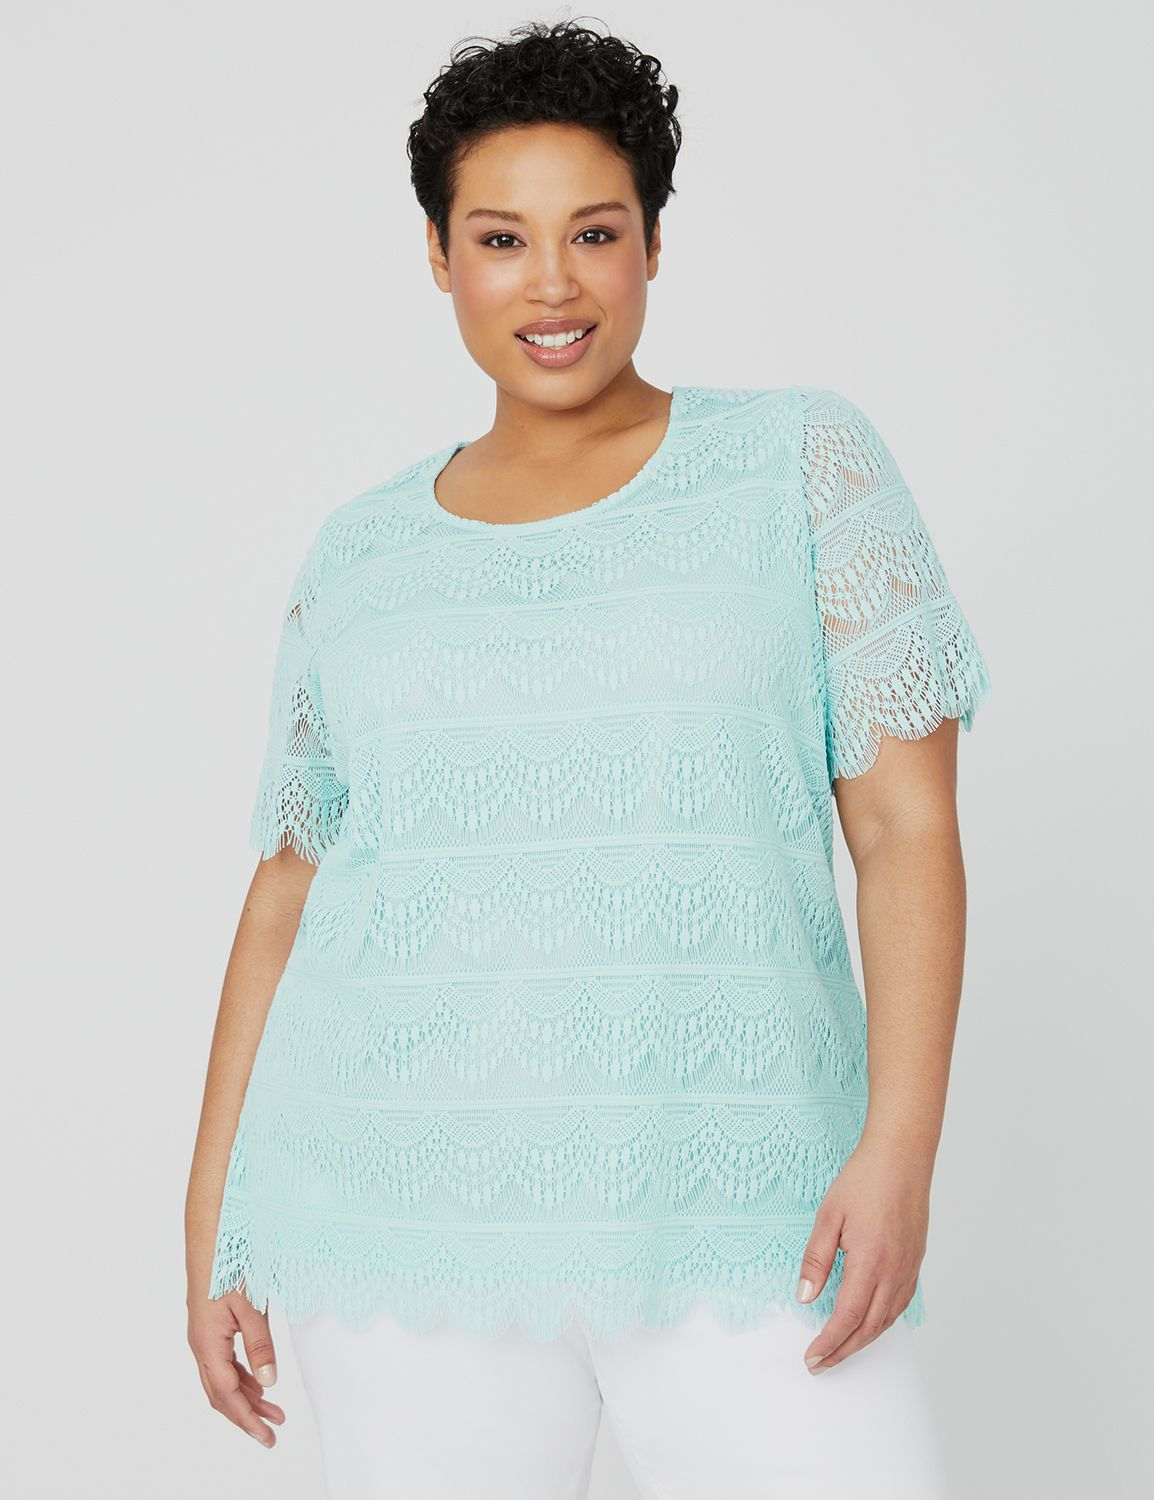 Waves of Lace Top 1087830 SCALLOP EDGE ALLOVER LACE MP-300100103